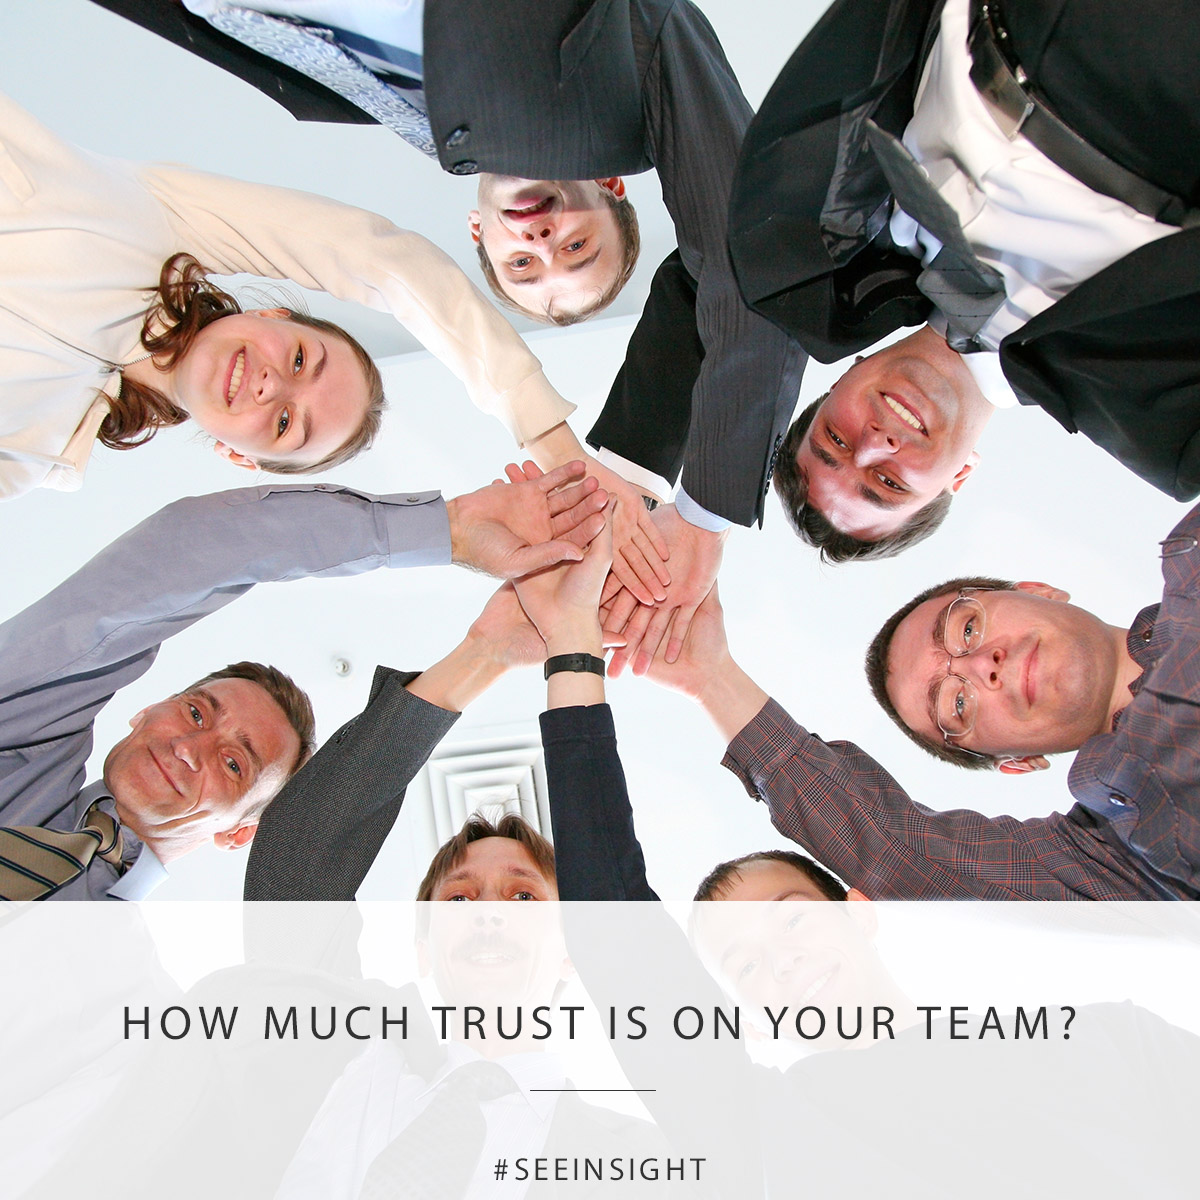 How Much Trust is on Your Team?